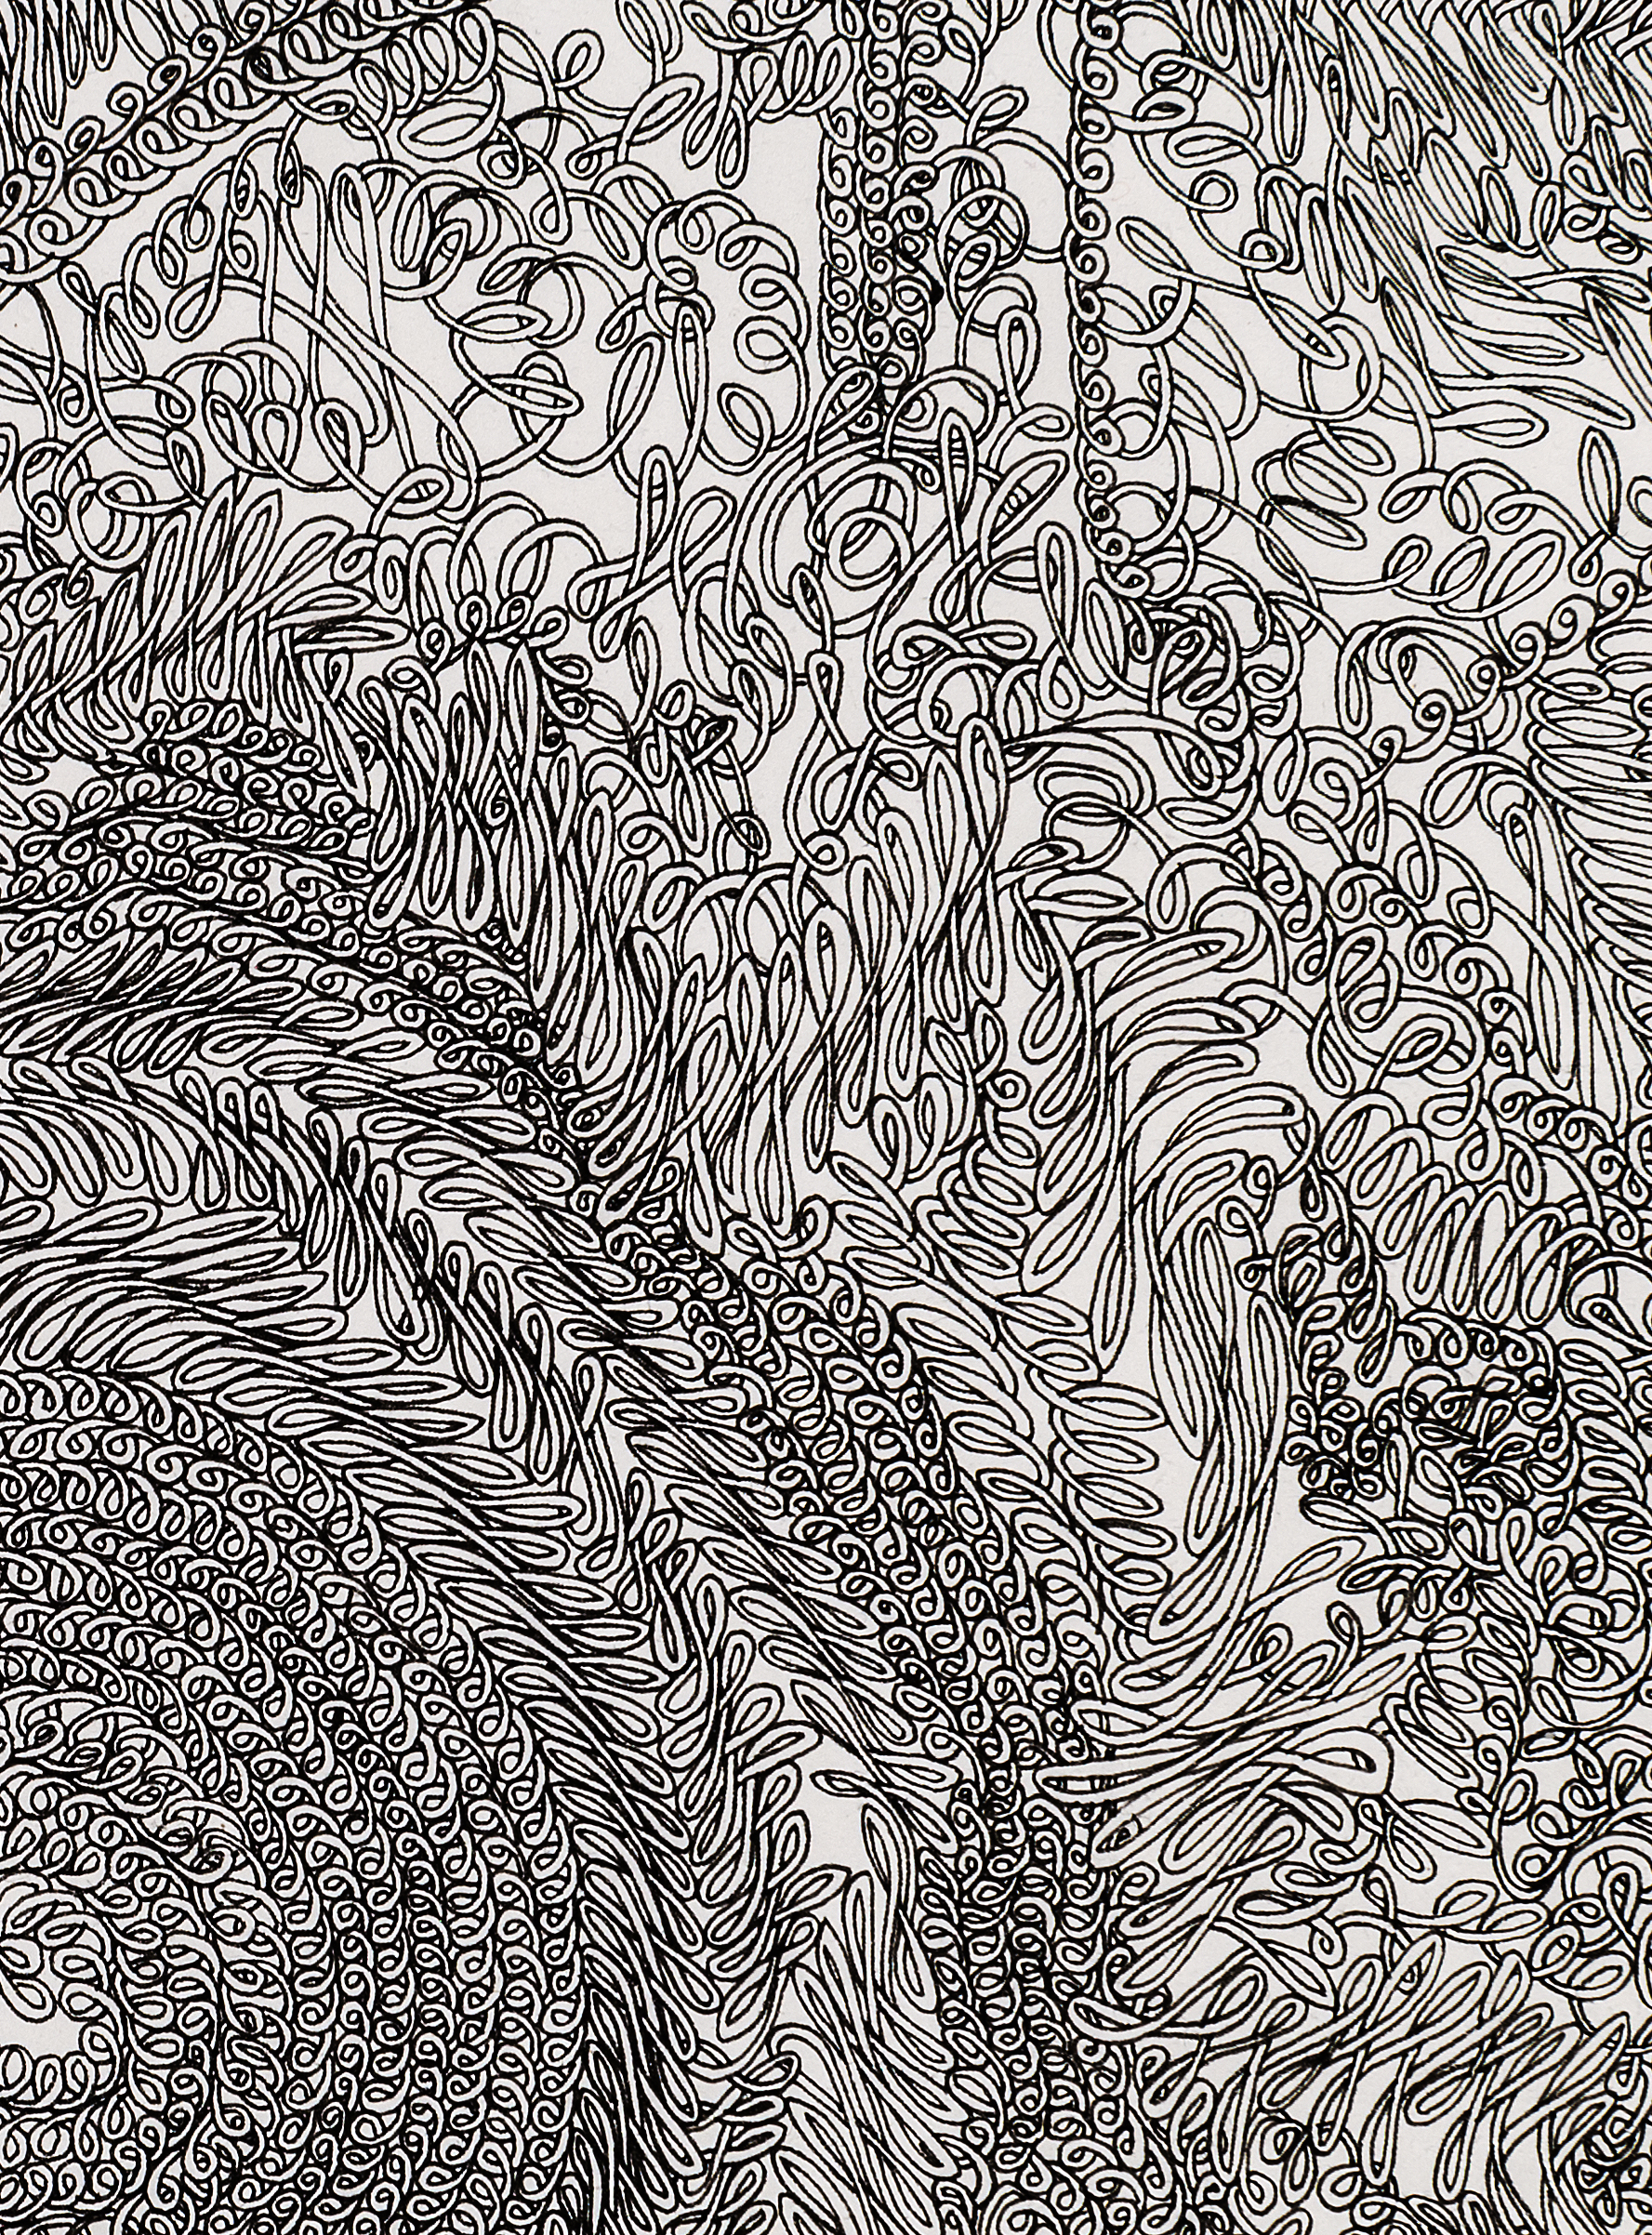 """Waste Not, Want Knot (DETAIL)"", ink on paper, 22x30"